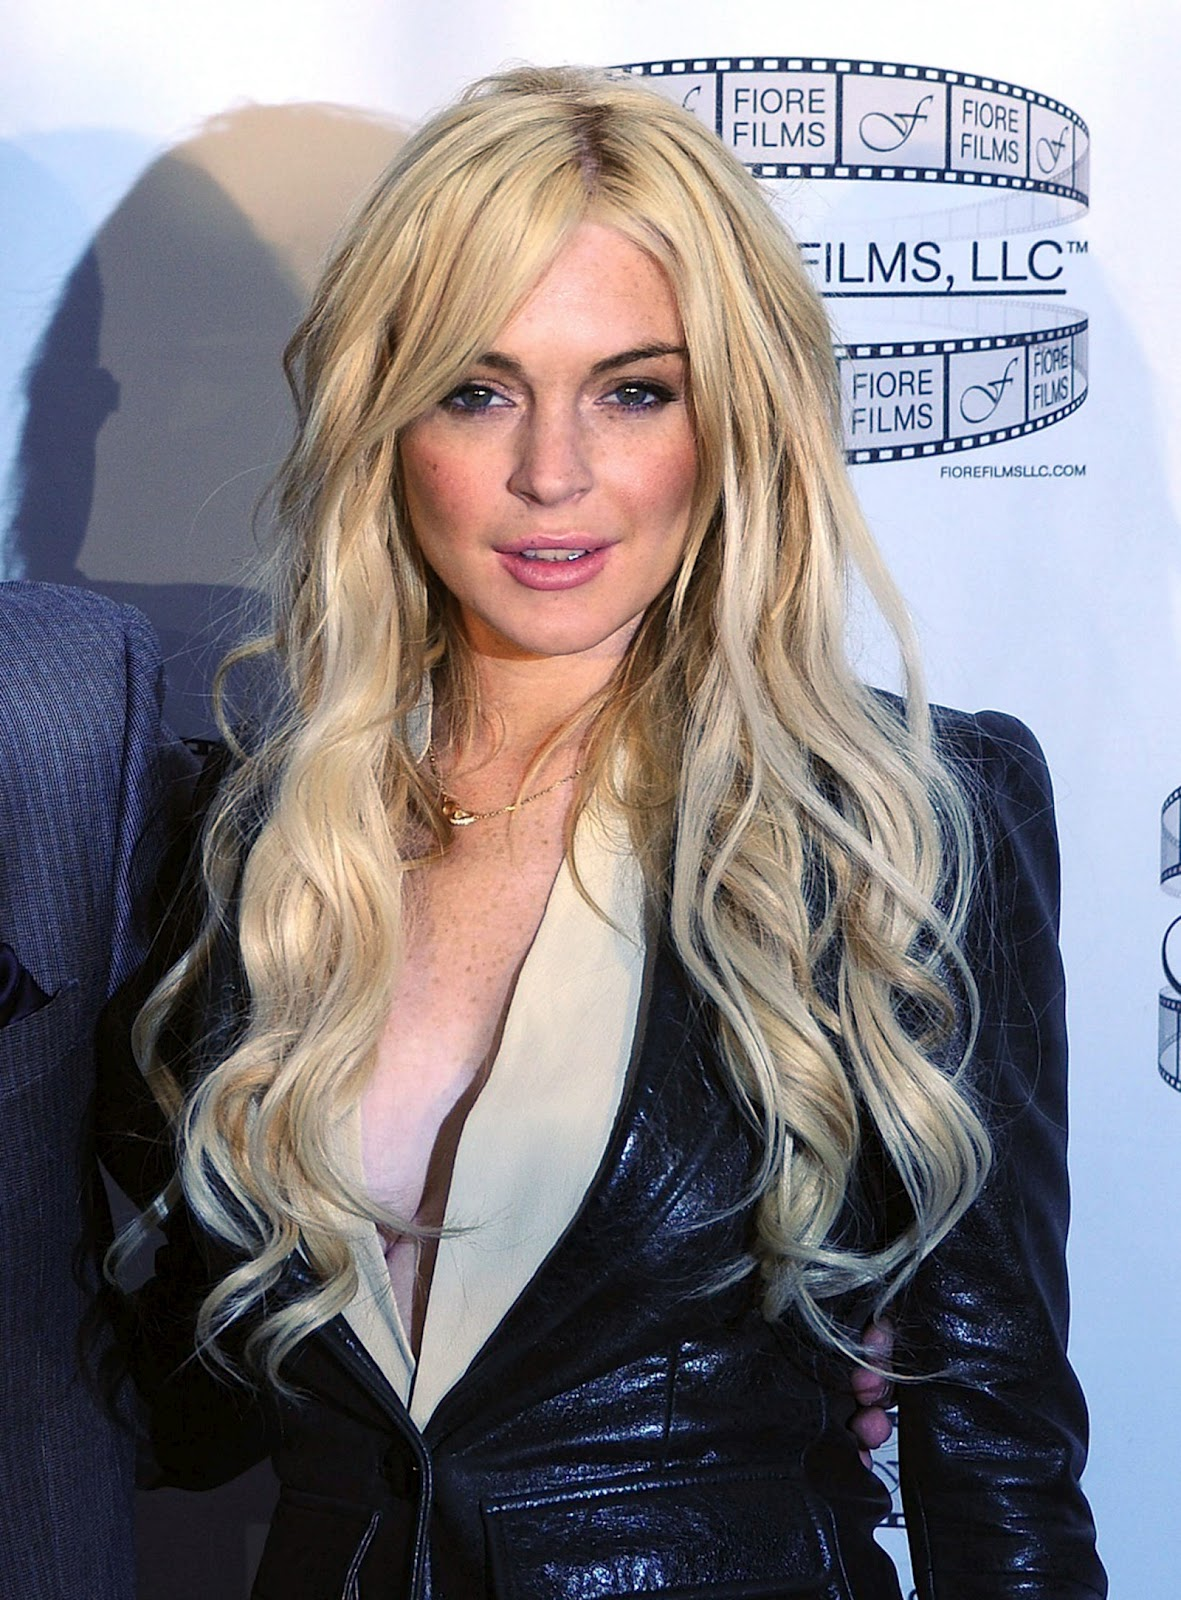 Lindsay Lohan   Actress Profile and Photos-Images 2012   Hollywood